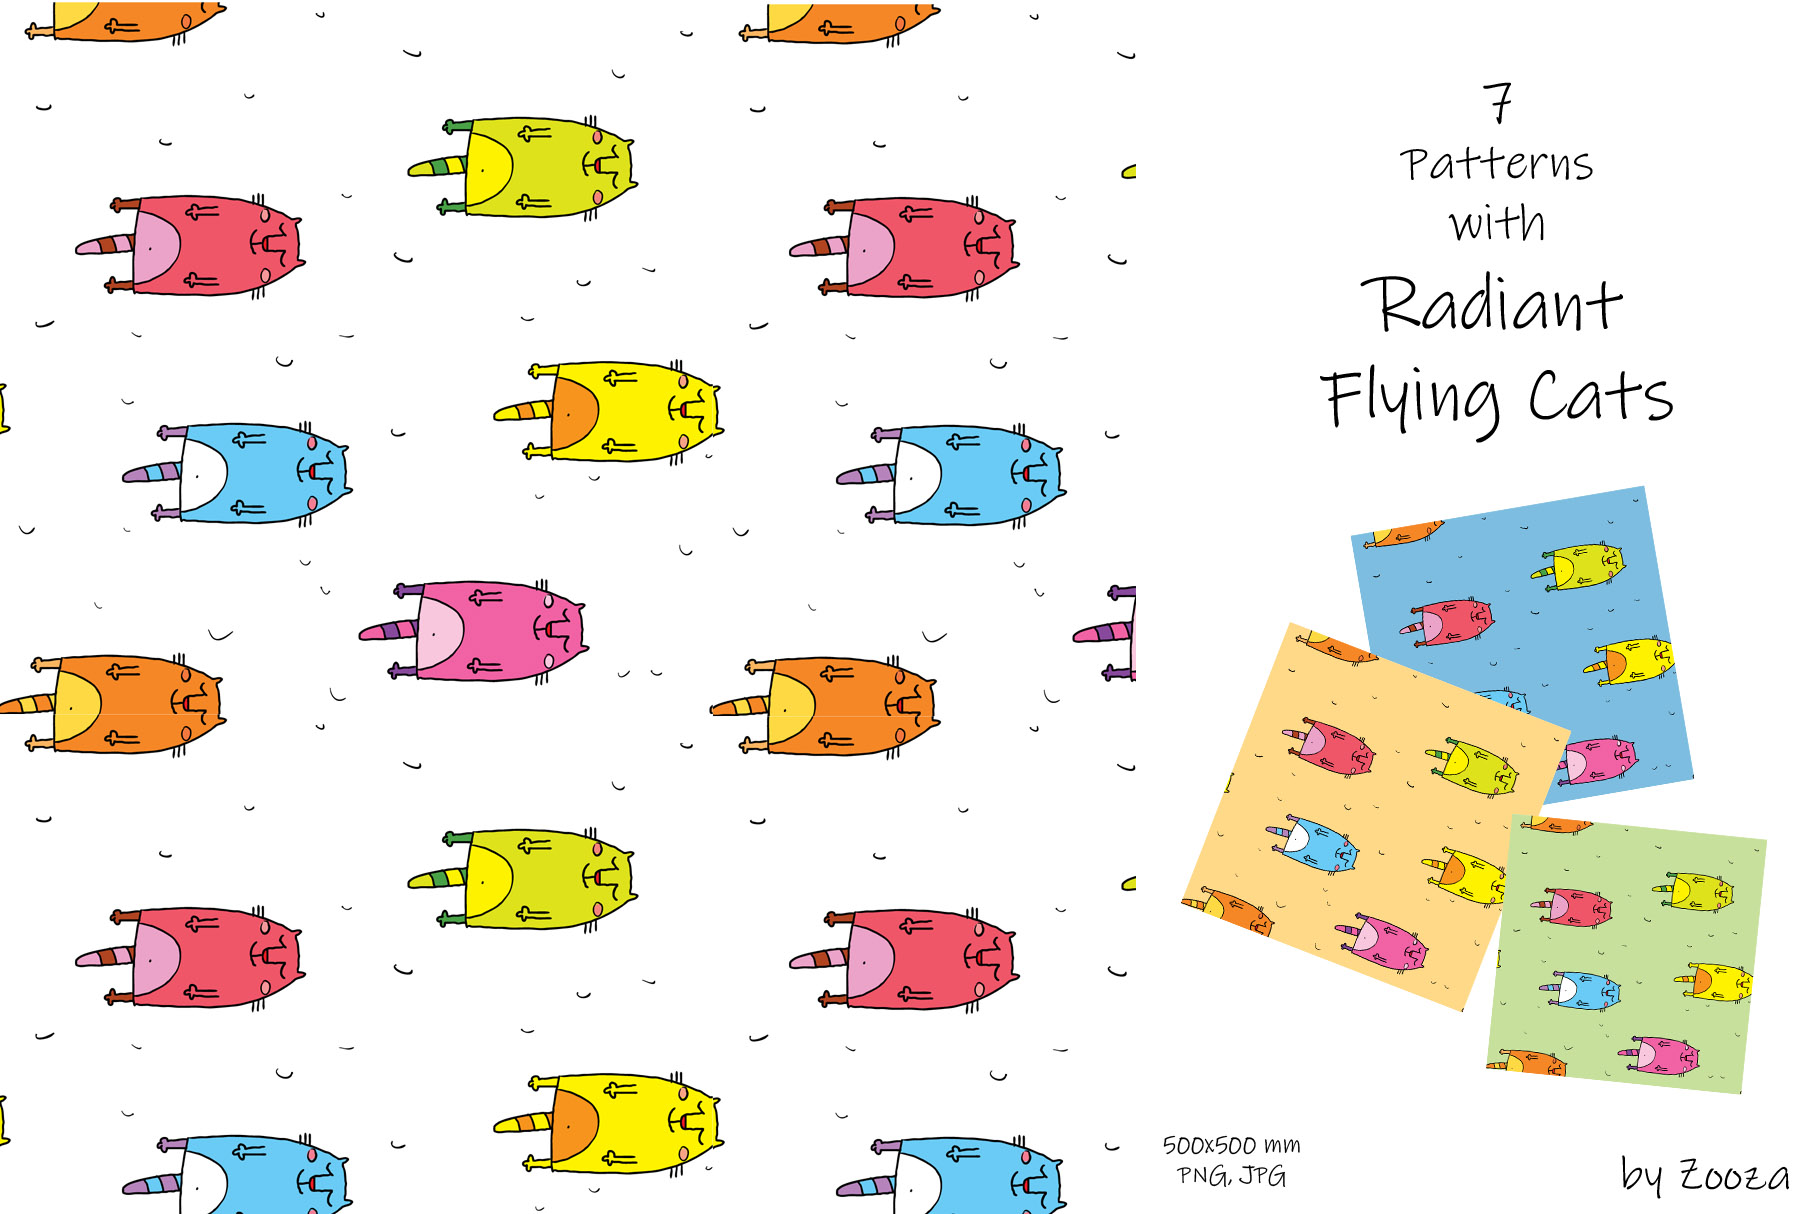 Flying Cats - patterns, illustrations example image 10